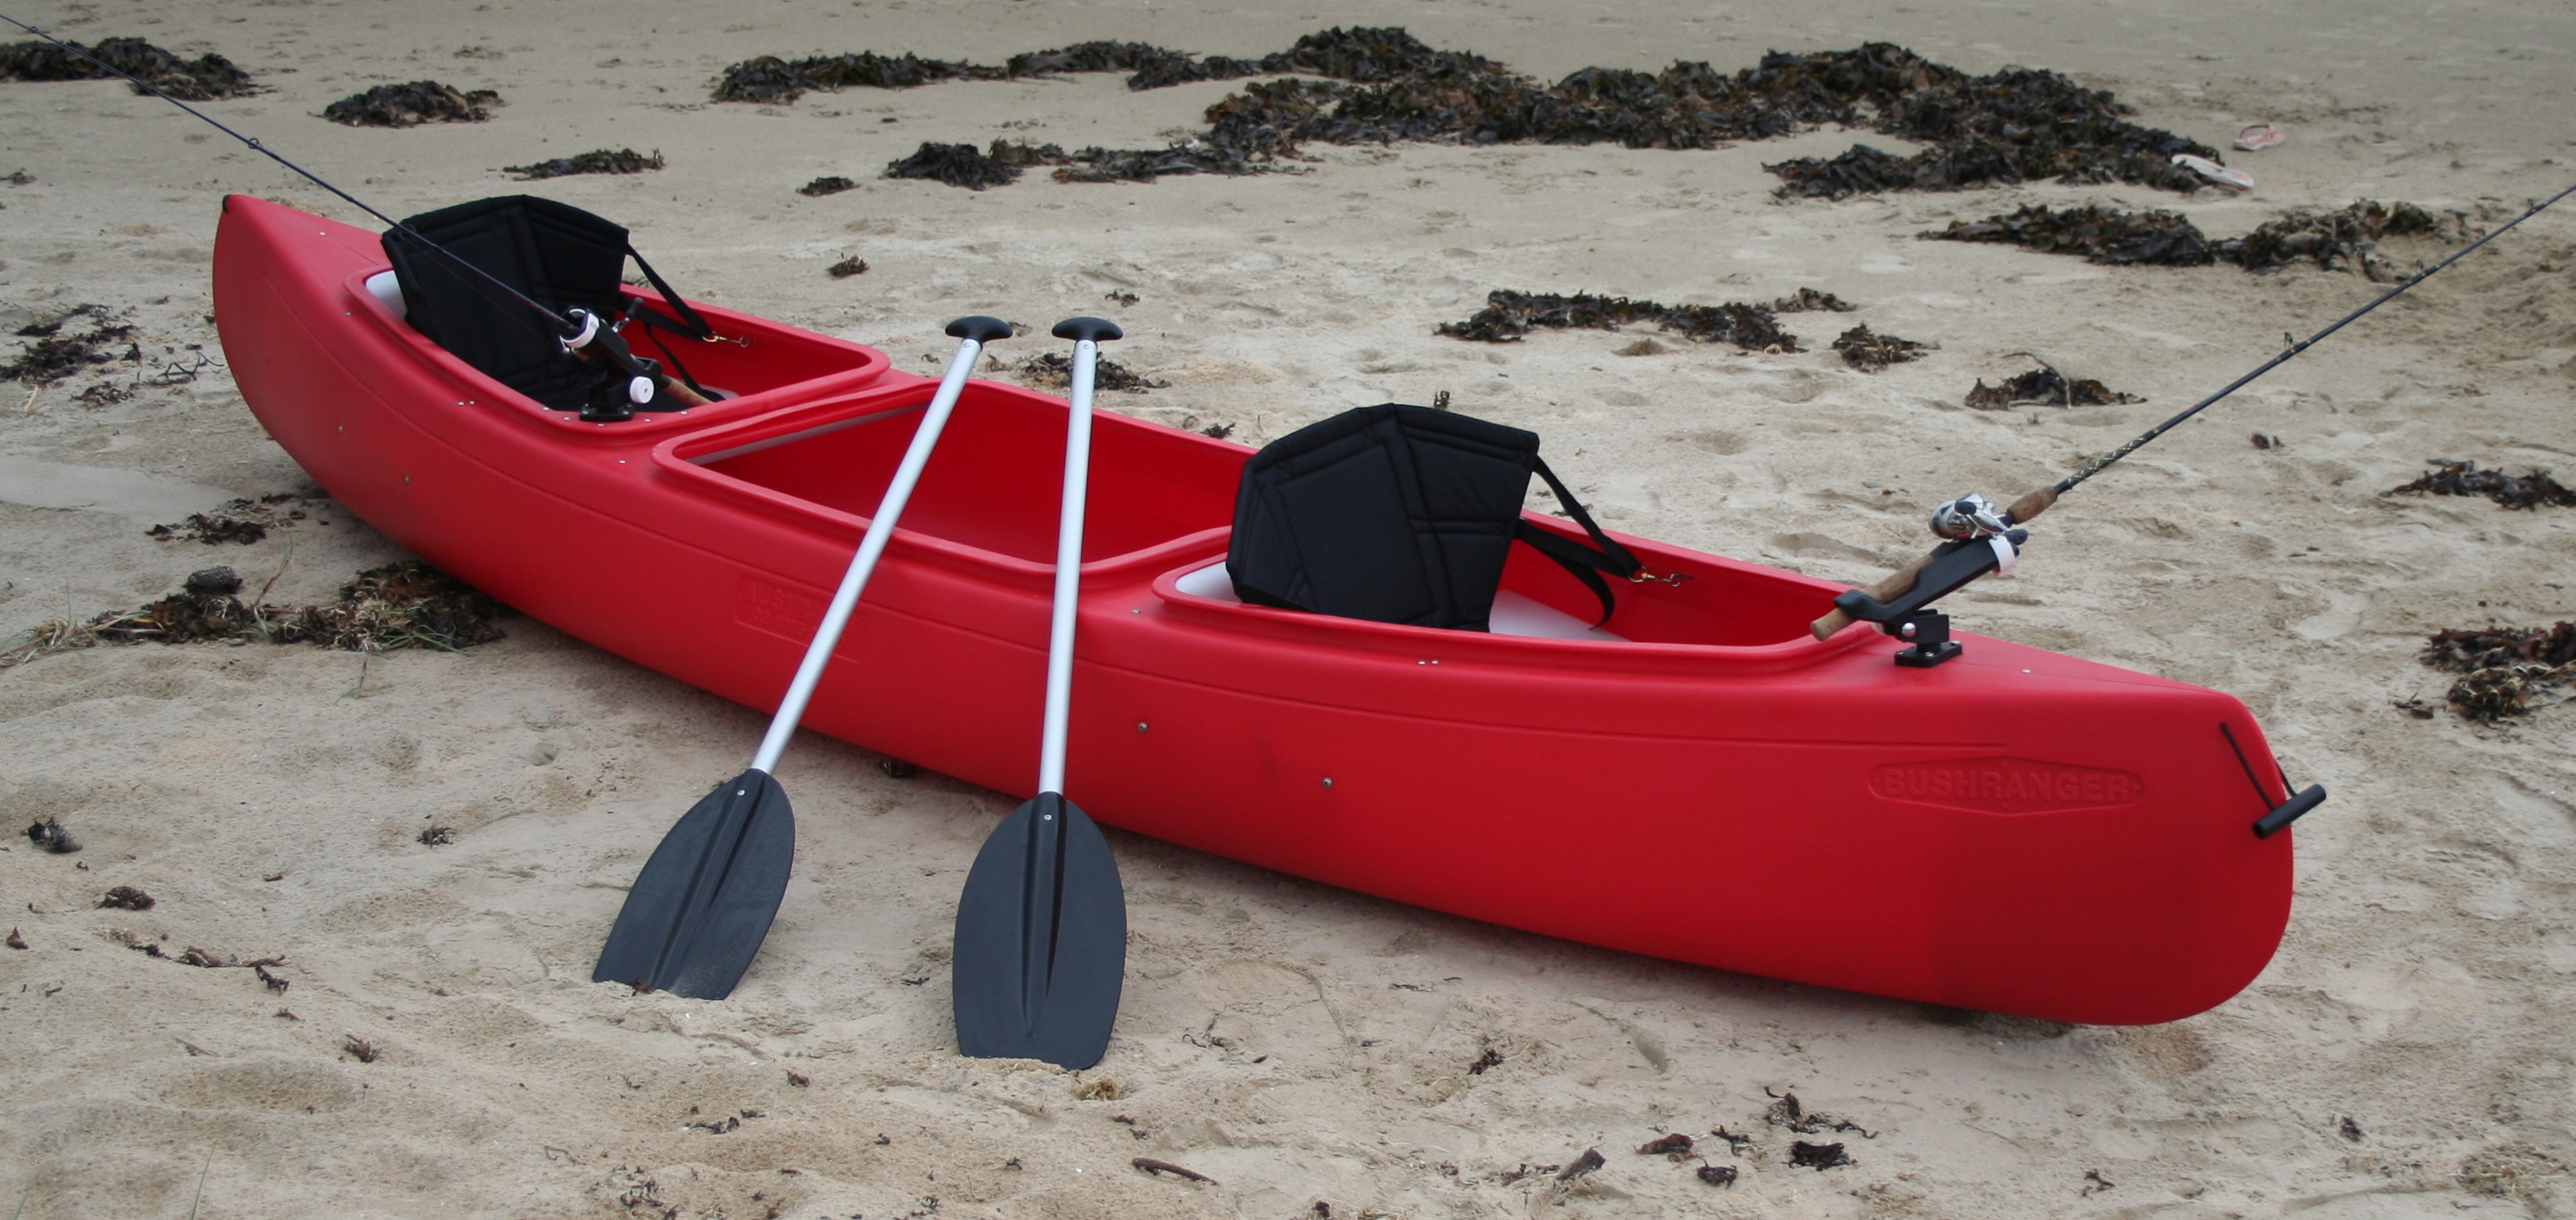 2 Seat Bushranger Angler And Fishing Canoes Made In